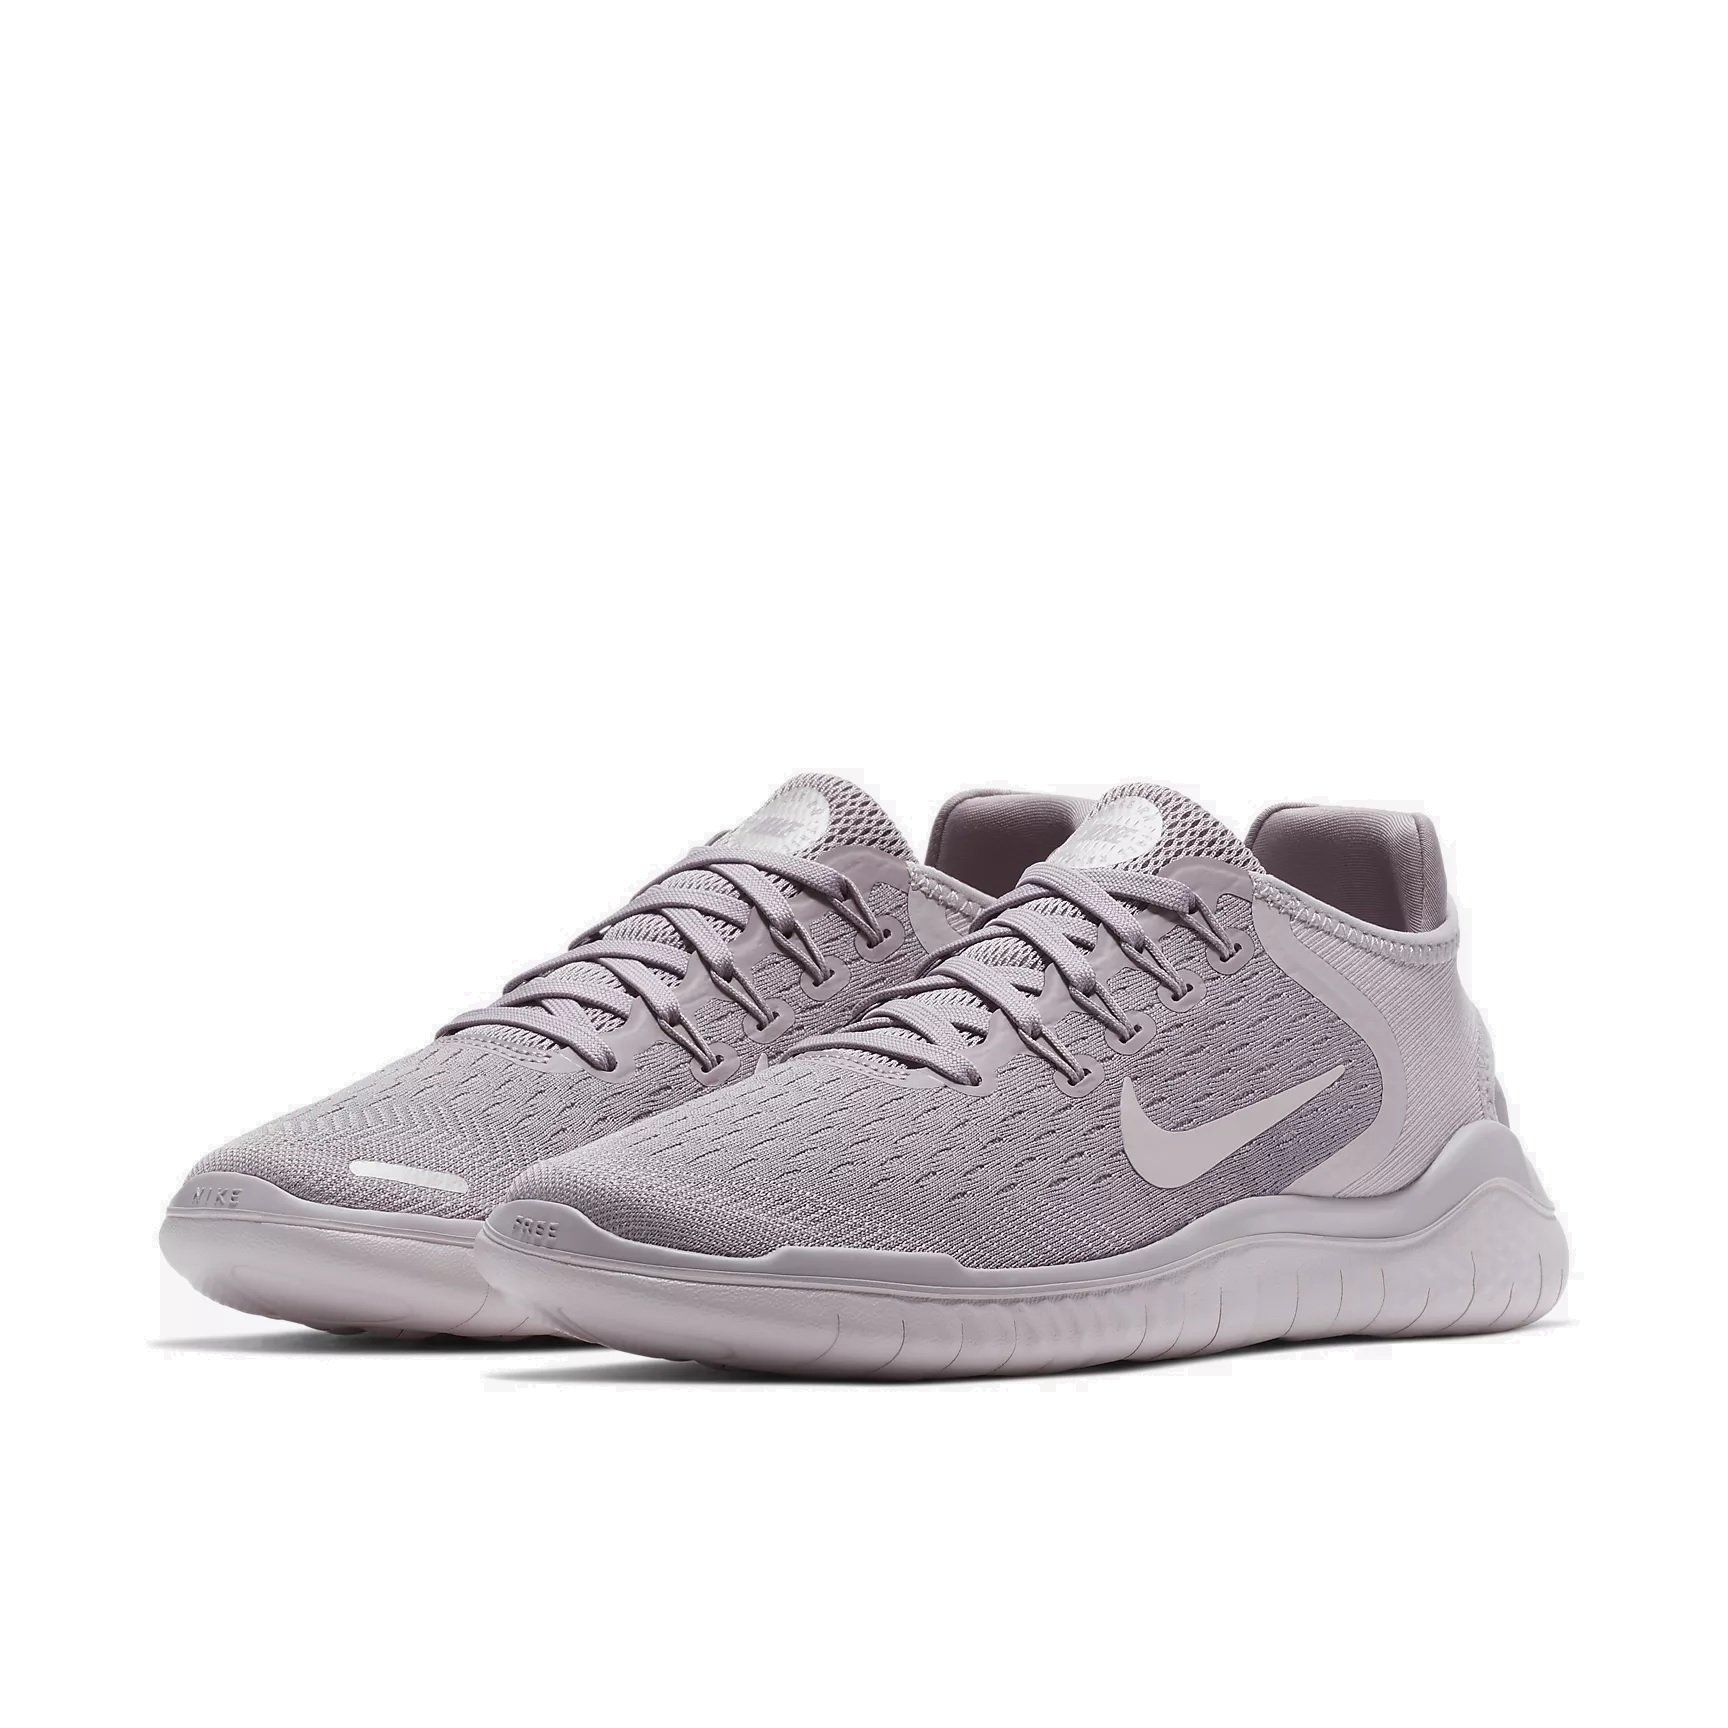 480c2b8015a9 Galleon - Nike Women s Free RN 2018 Running Shoe (9.5 B(M) US ...